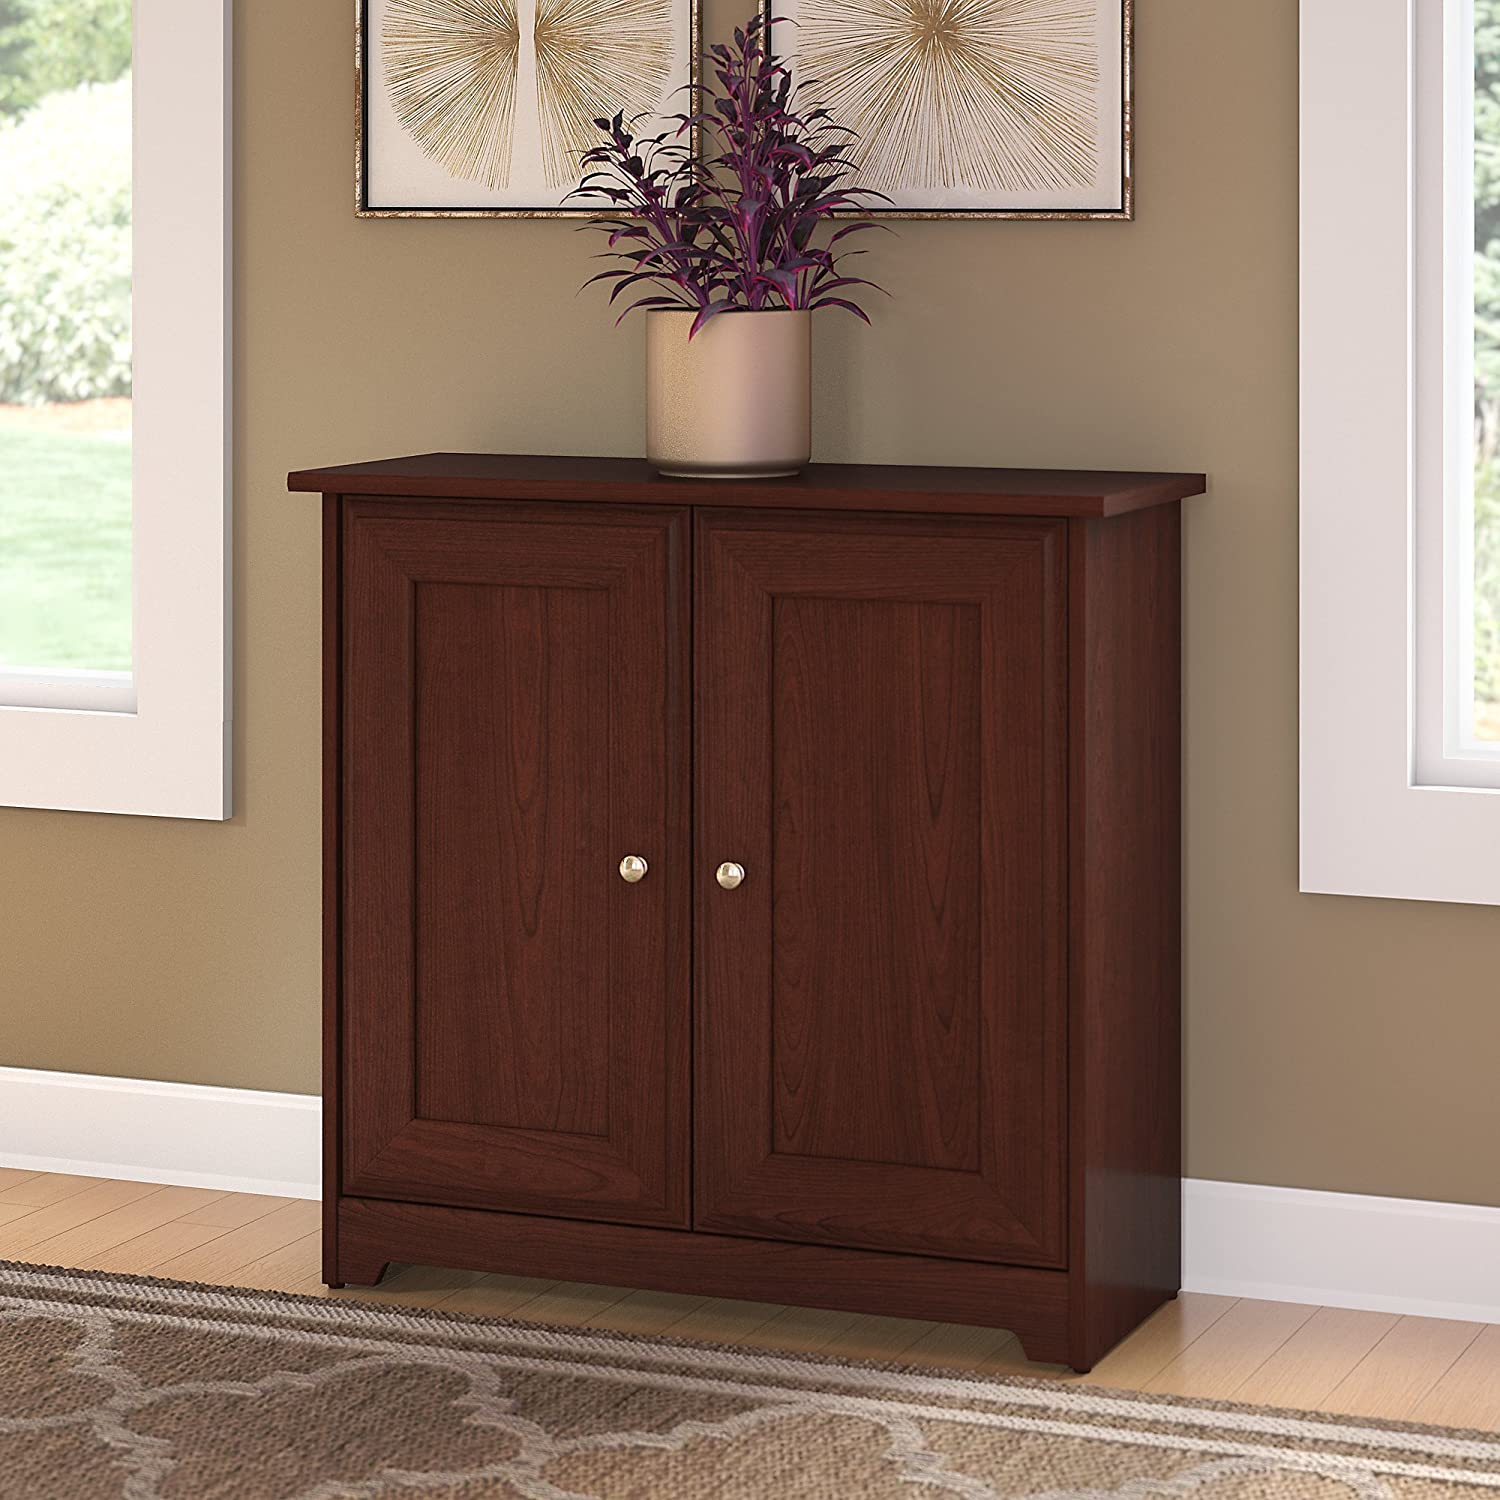 Amazoncom Bush Furniture Cabot Small Storage Cabinet With Doors In